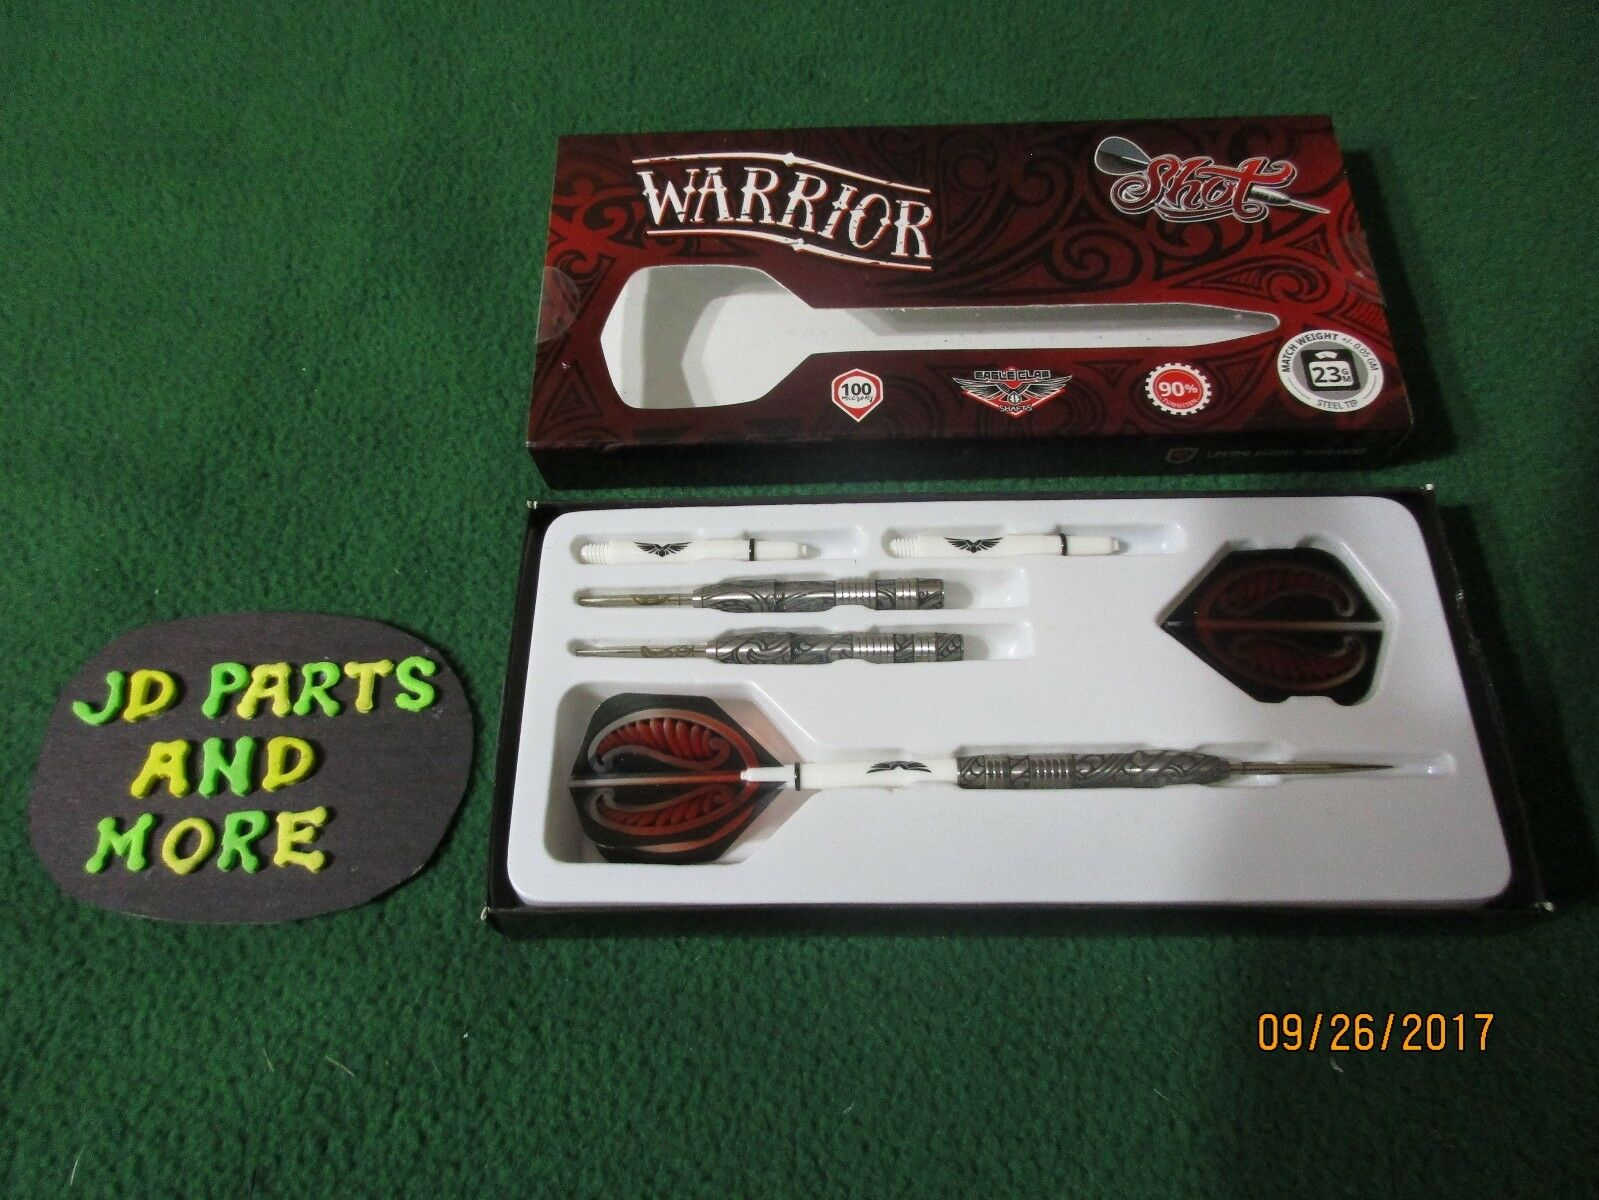 3 NEW SHOT CLAW WARRIOR 23GM FRONT WEIGHTED,STEEL TIP,EAGLE CLAW SHOT SHAFT DARTS WST-123 c10d08